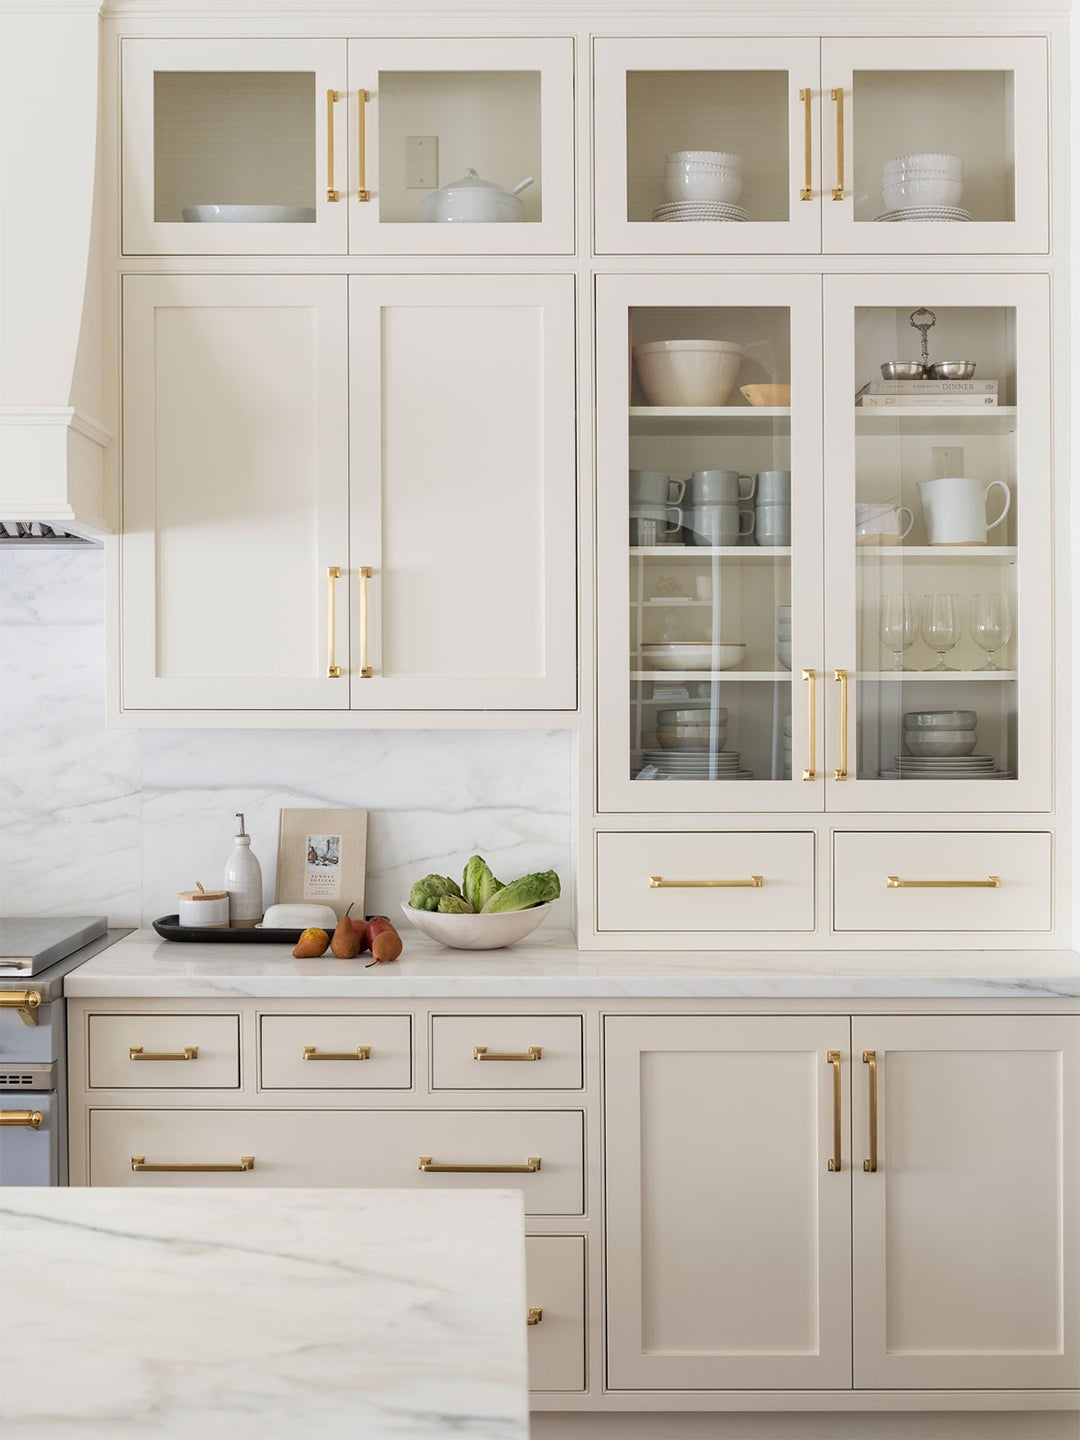 cream colored kitchen and glass front doors